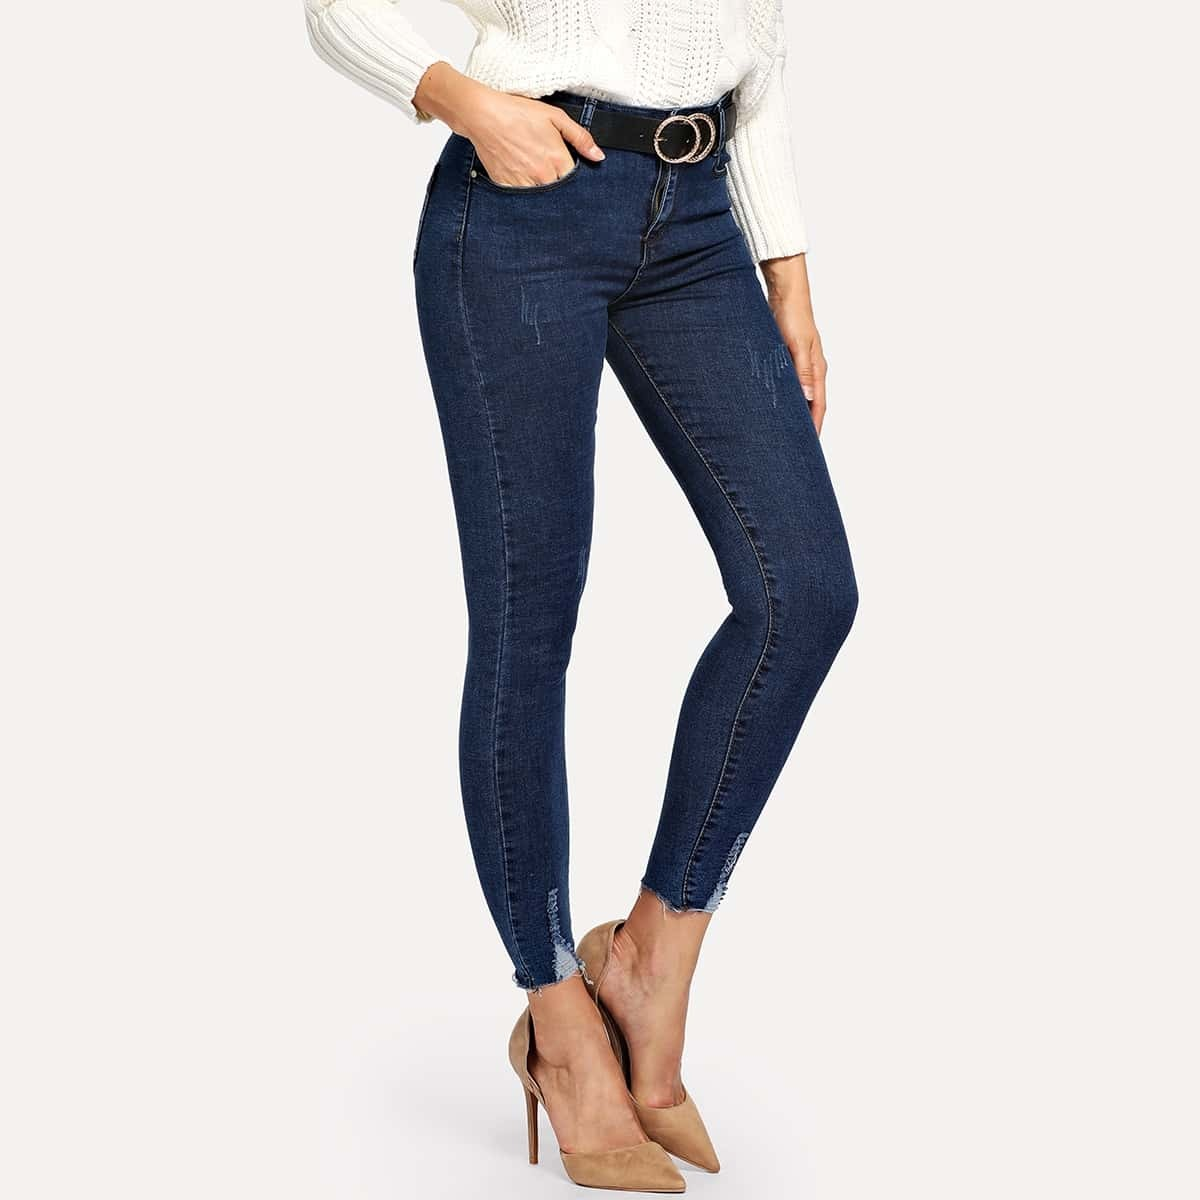 Ankle Skinny Jeans Without Belt